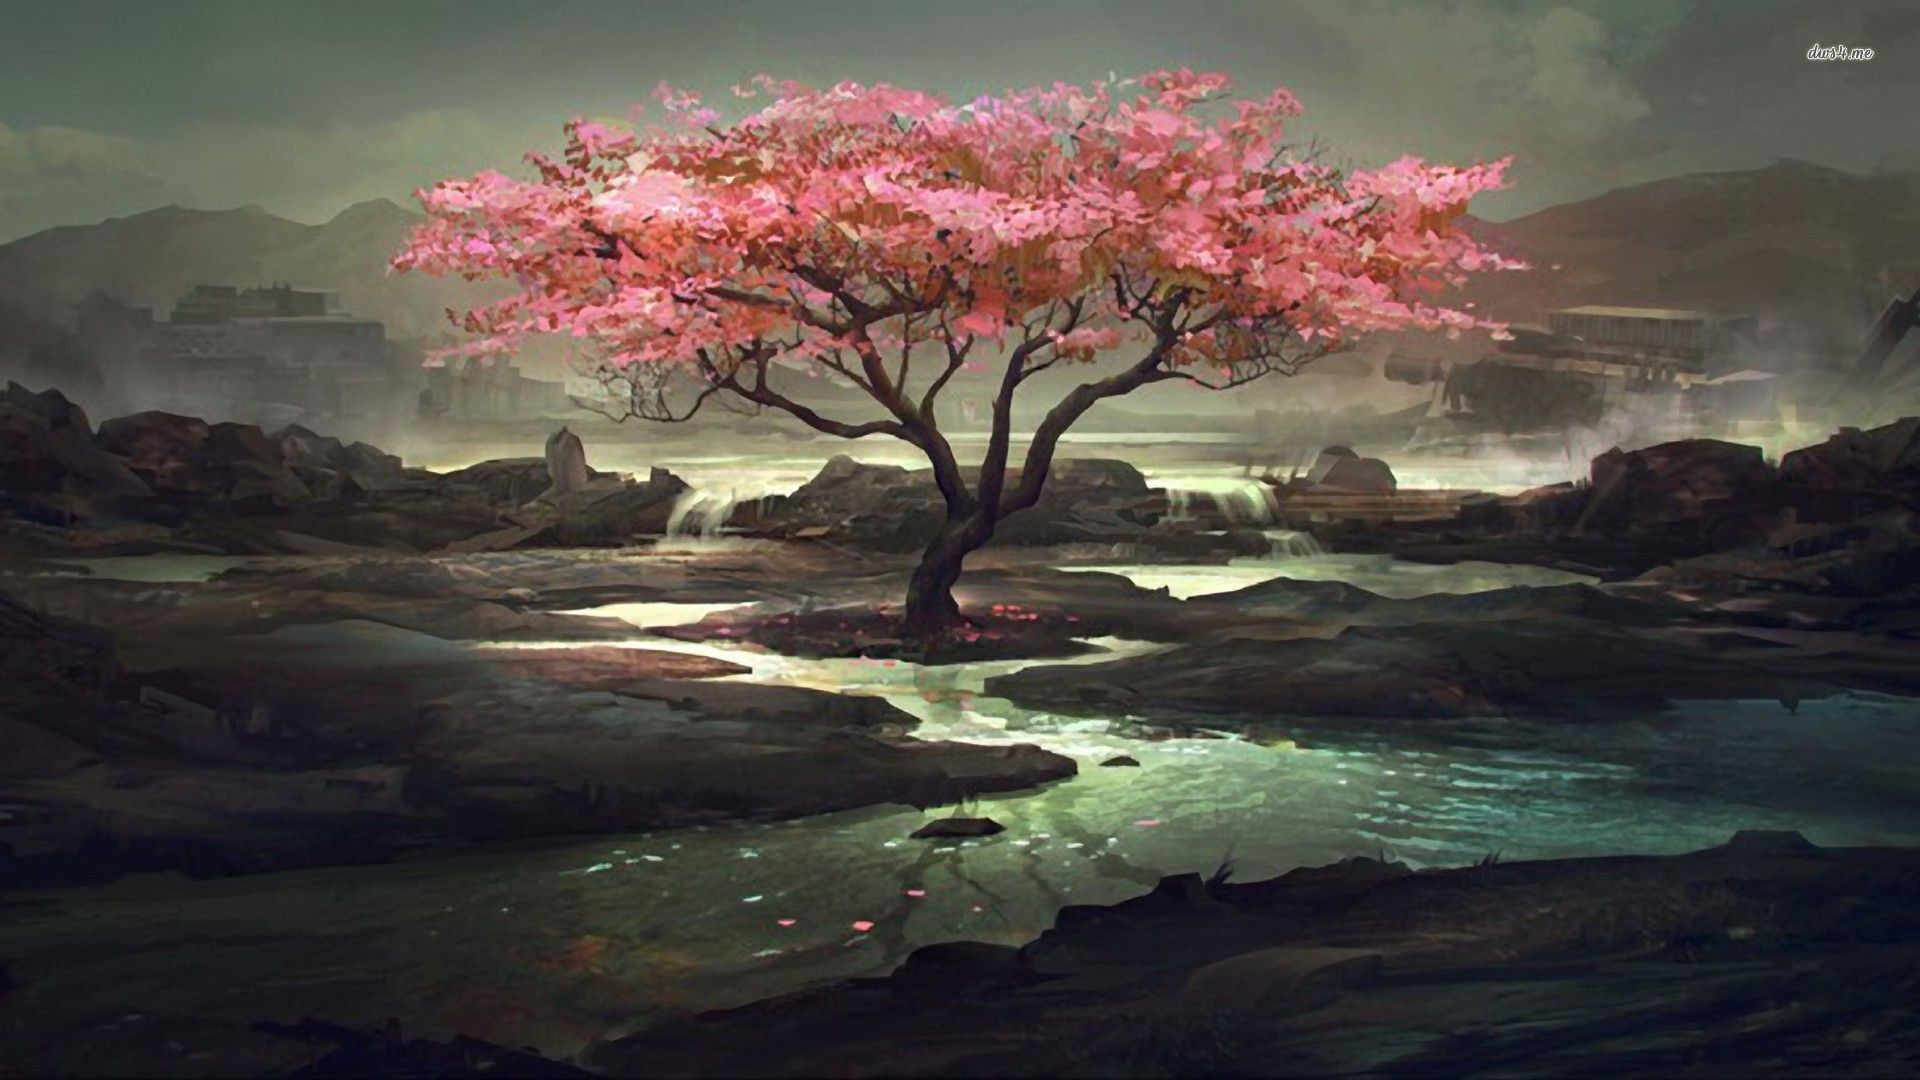 Creekside Cherry Tree Artistic Hd Desktop Wallpaper Zero Two Wallpaper 4k 1920x1080 Download Hd Wallpaper Wallpapertip